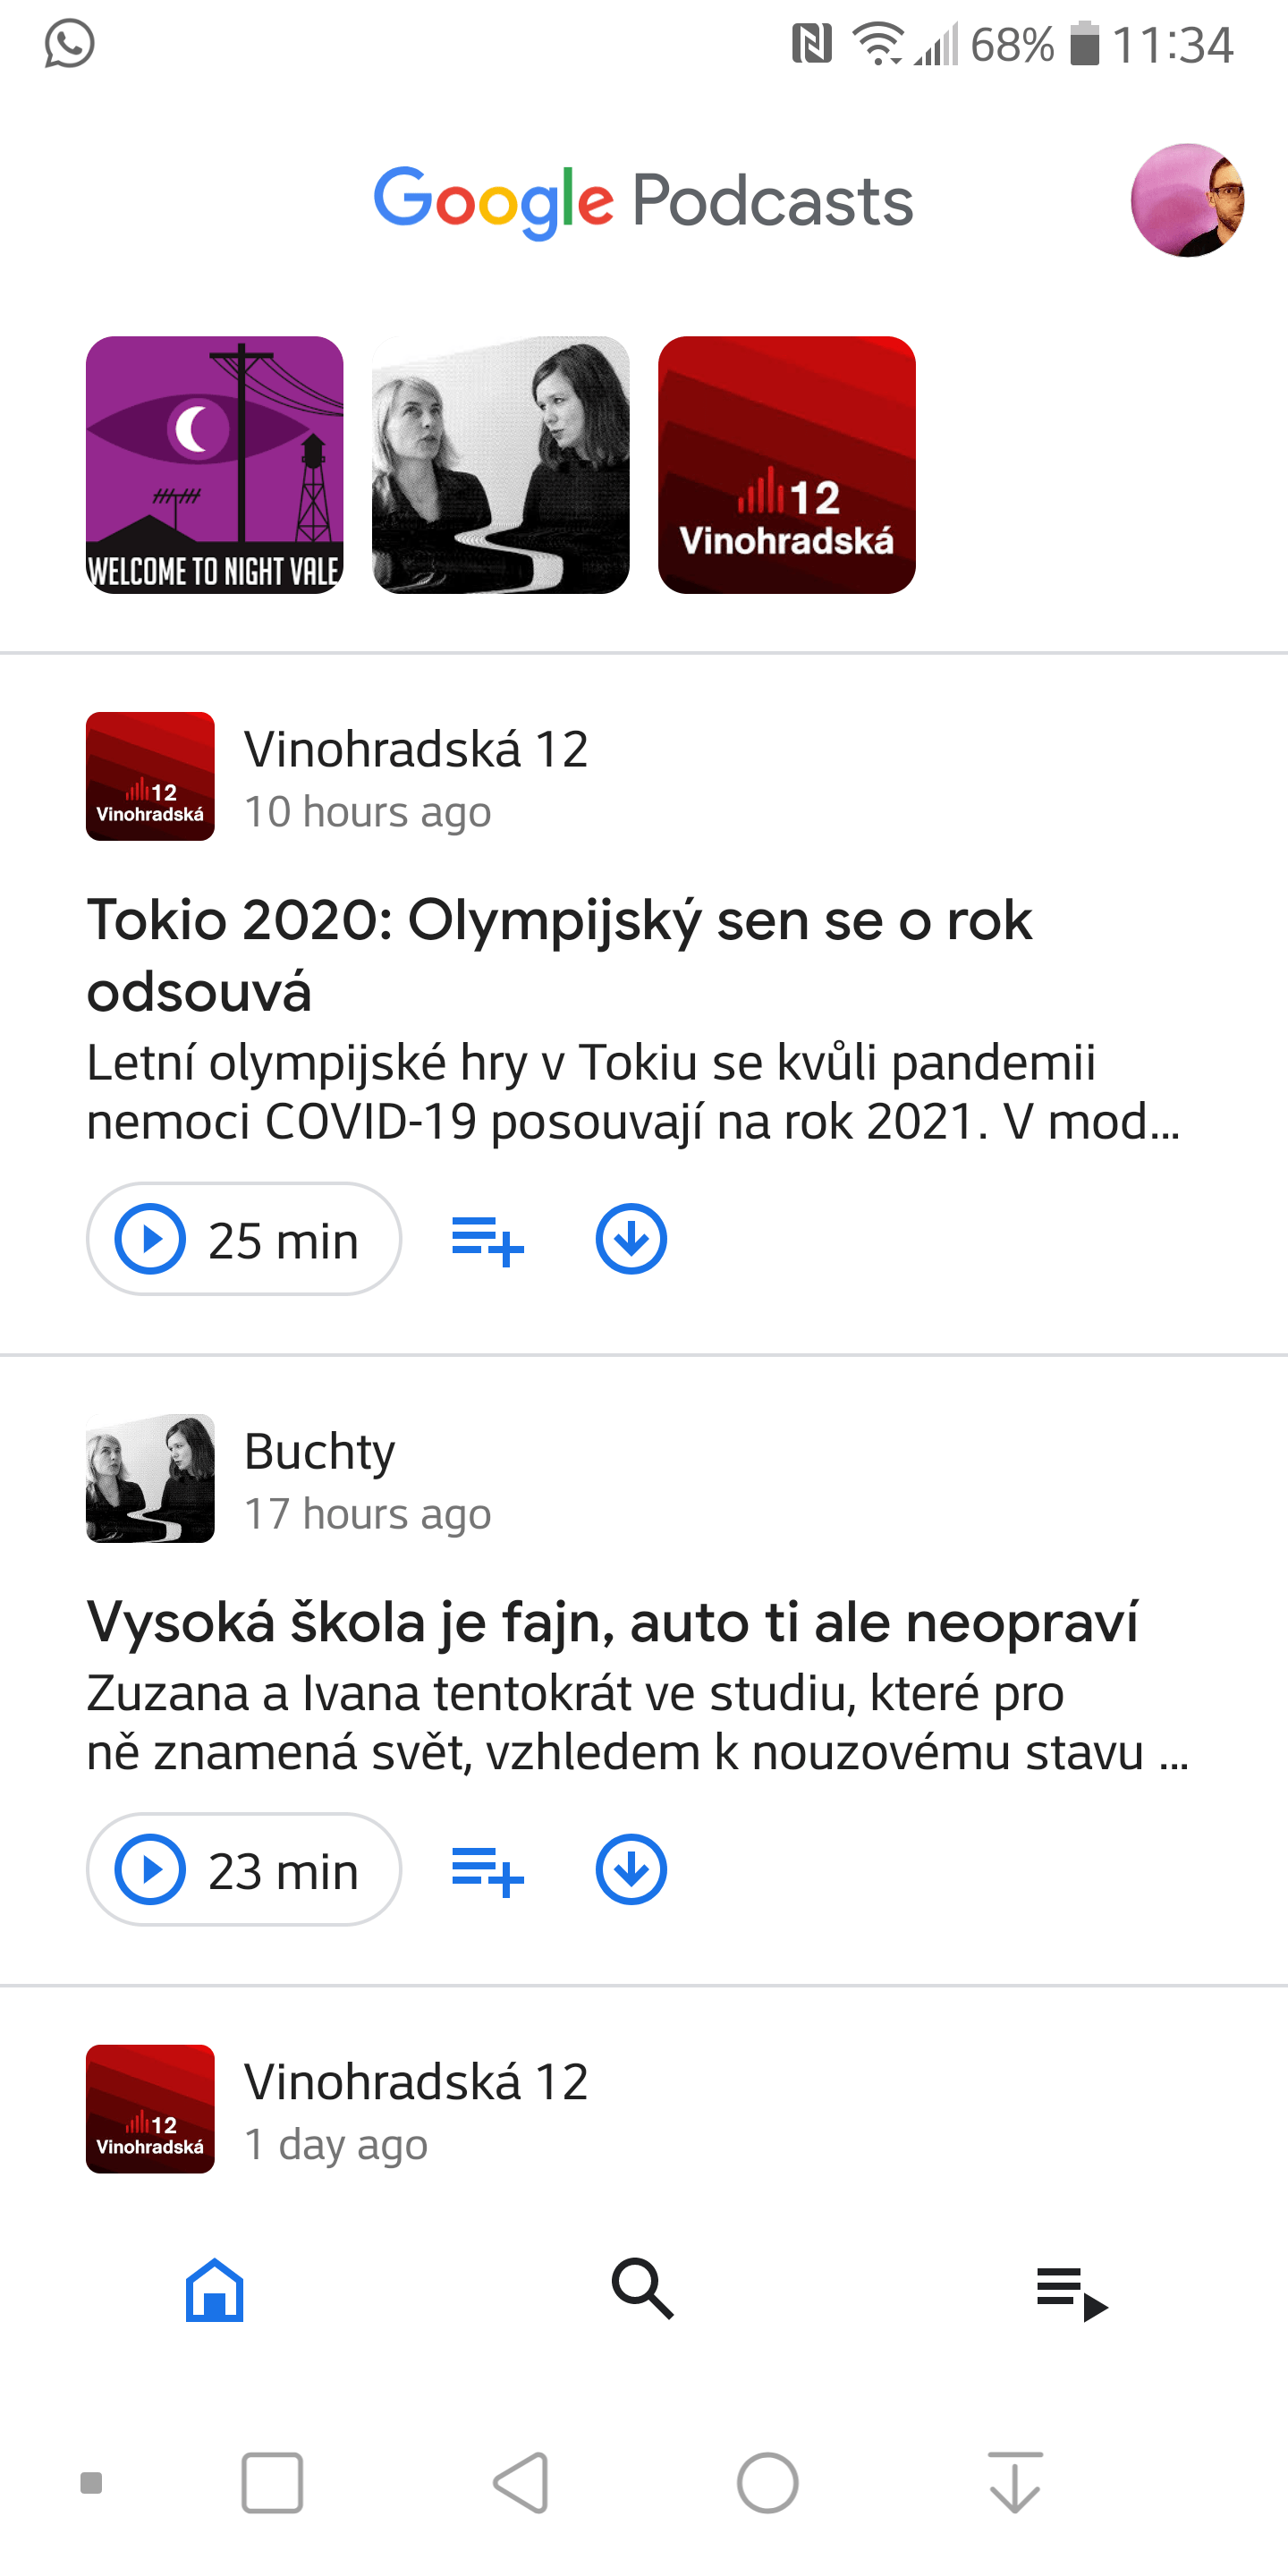 google podcasts redesign 2020 3